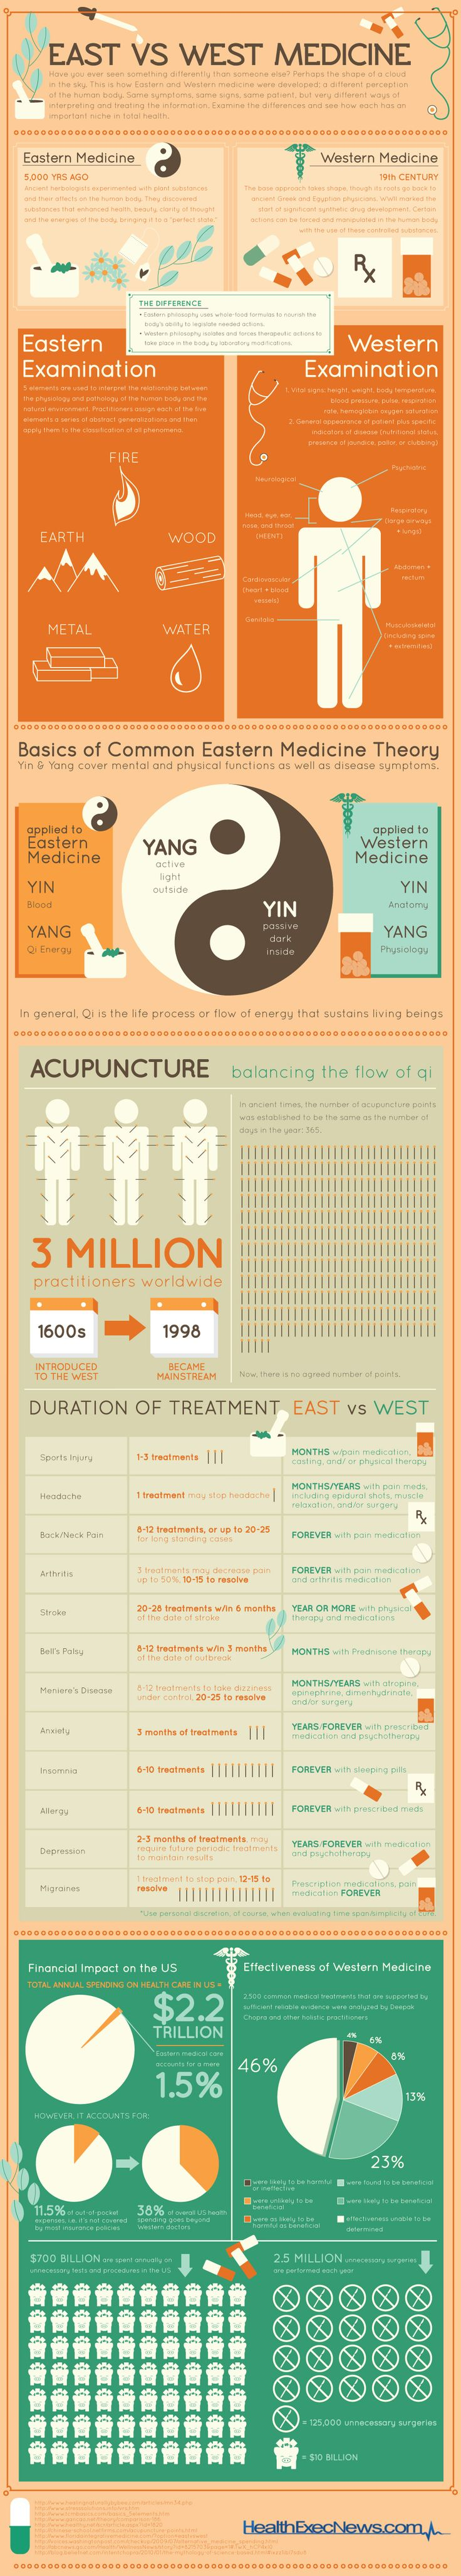 East vs West Medicine Infographic. When in doubt, embrace holistic eastern medicine for greater wellness.